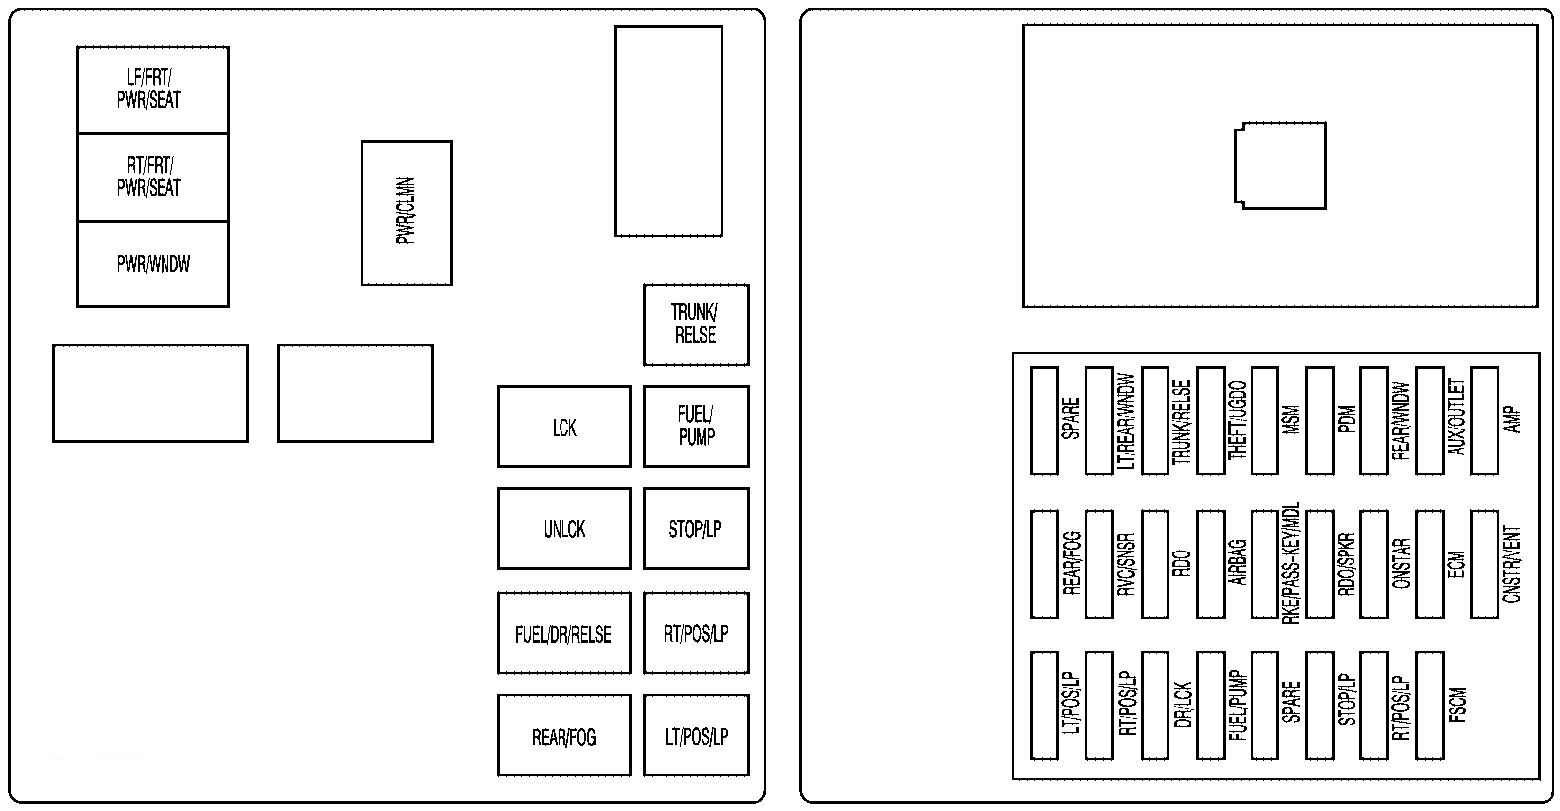 Circuit Electric For Guide: 2007 cadillac cts fuse box diagram